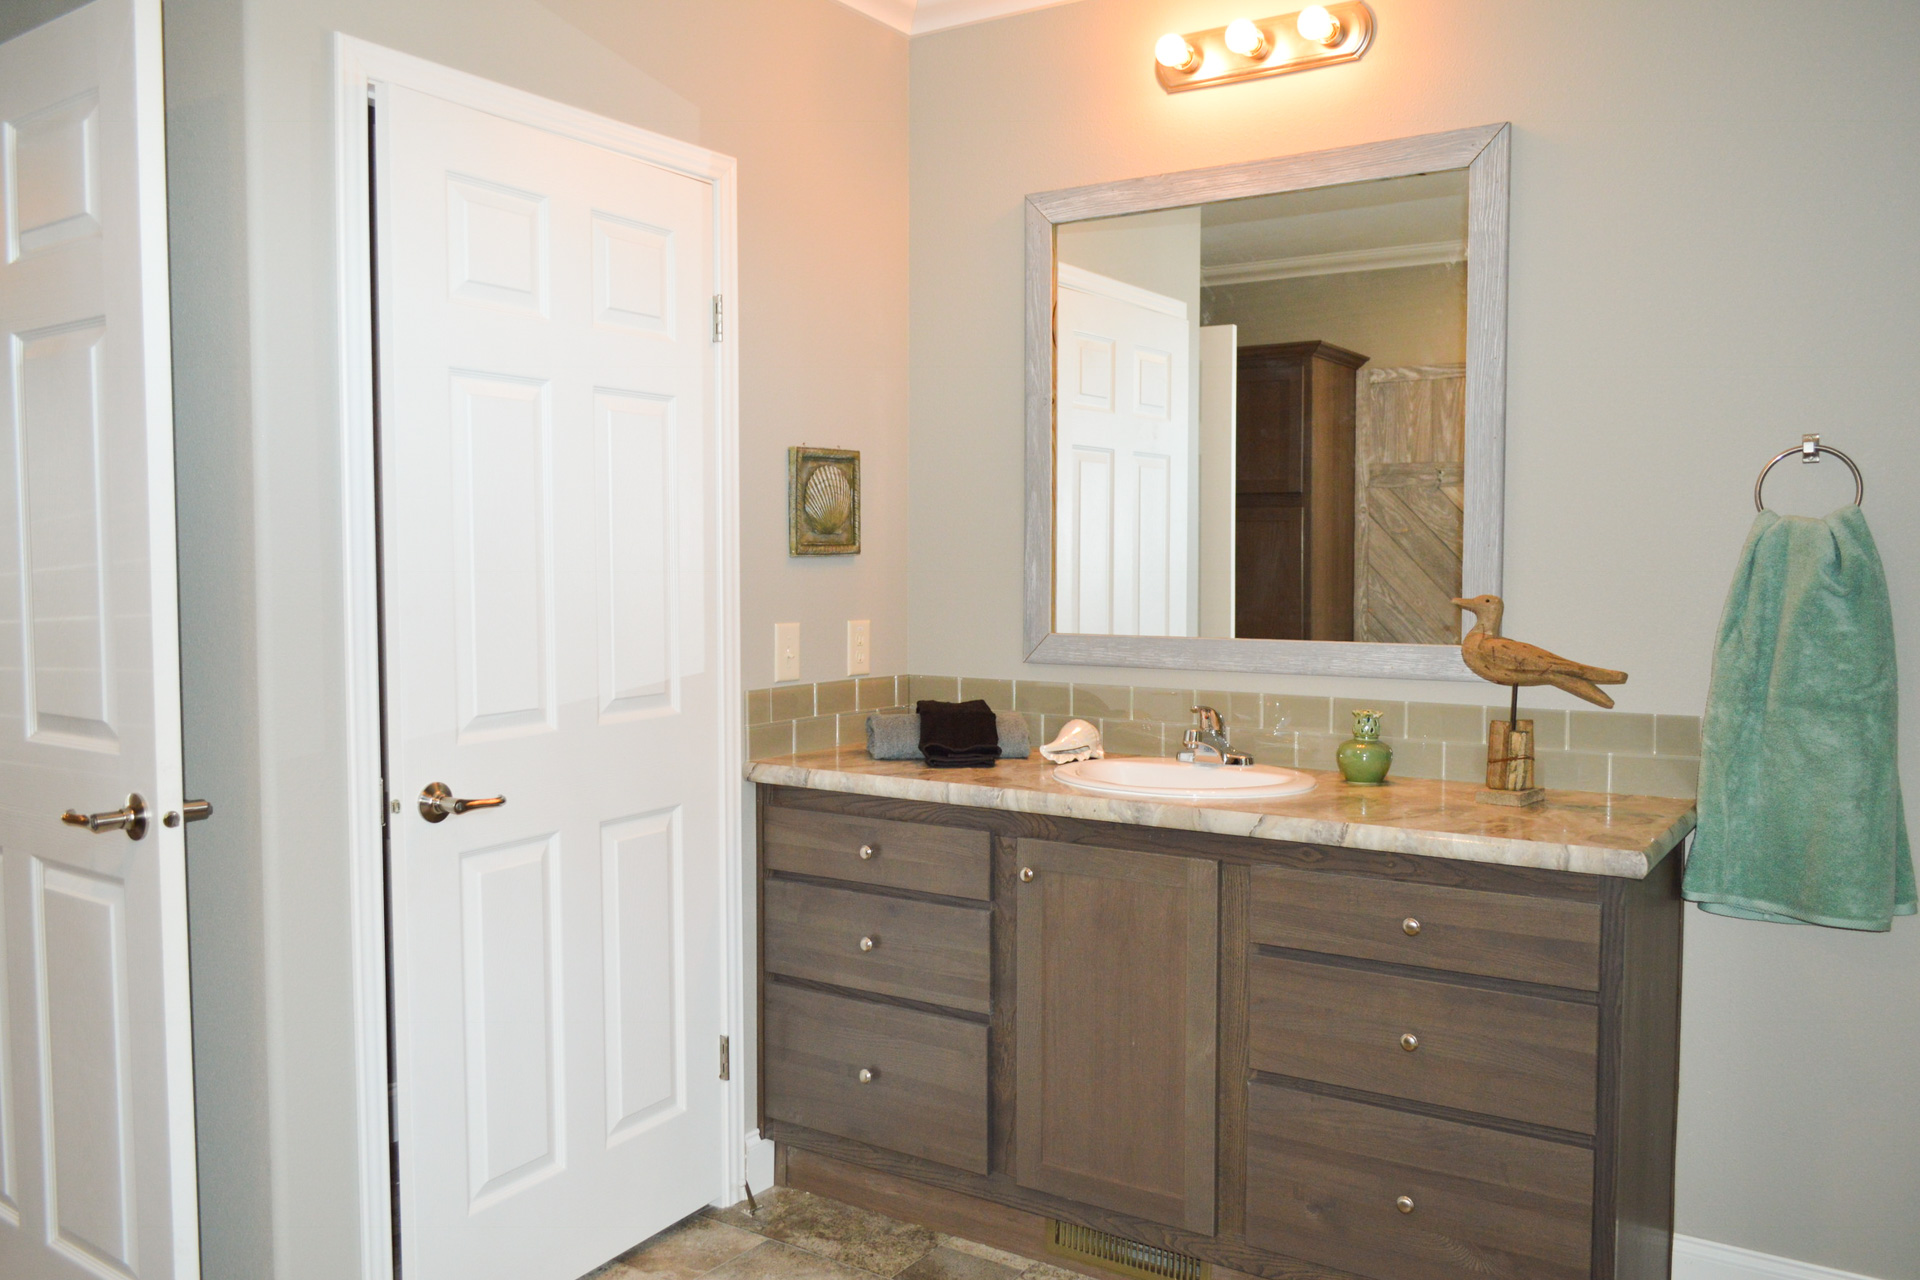 Spring View / 6893 - Bathroom